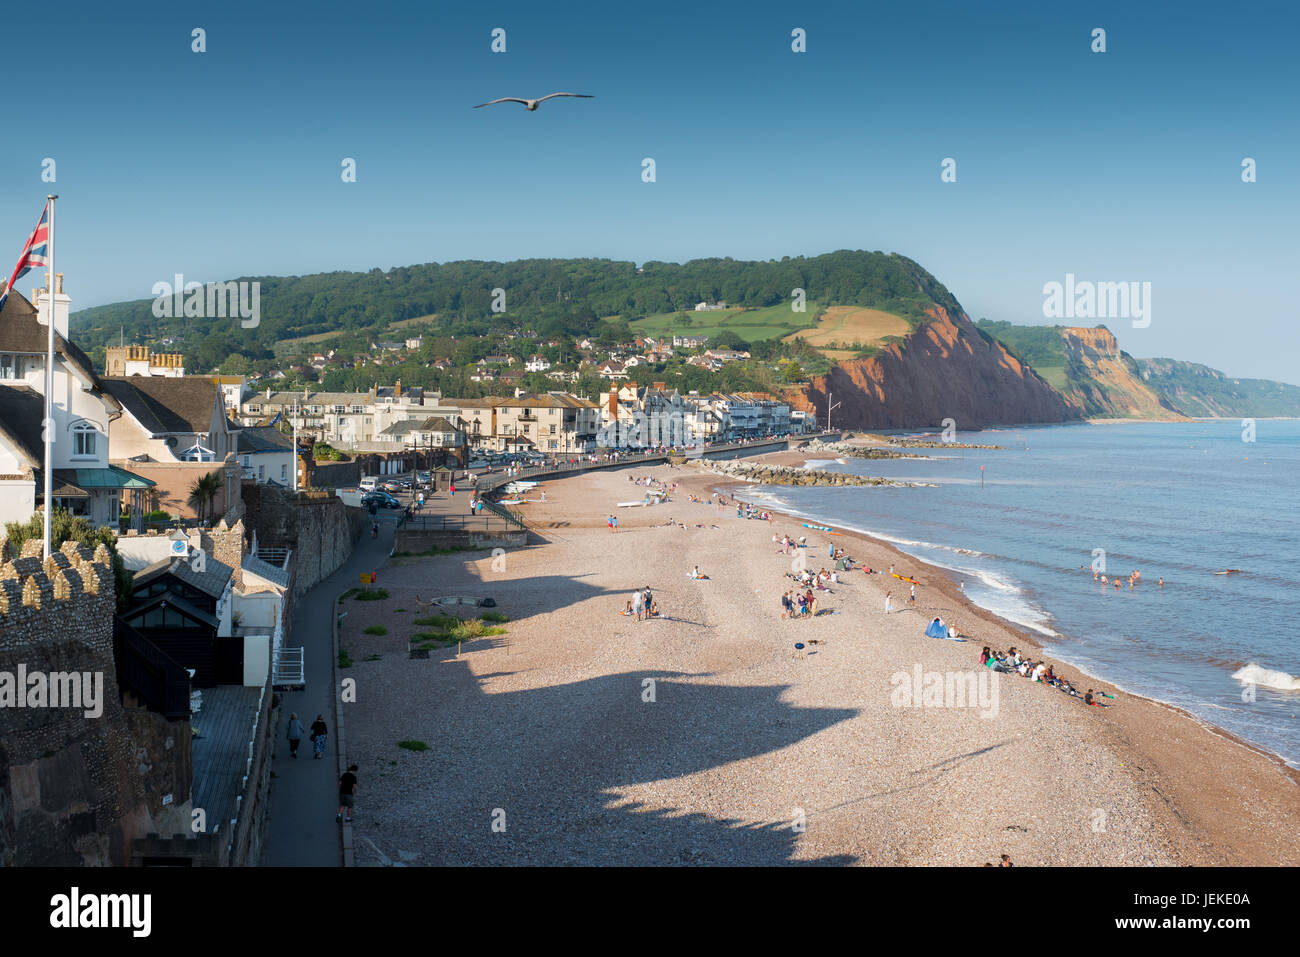 Pic by Guy Newman. 15.07.2013. The evening sun falls on Sidmouth beach in Devon. - Stock Image